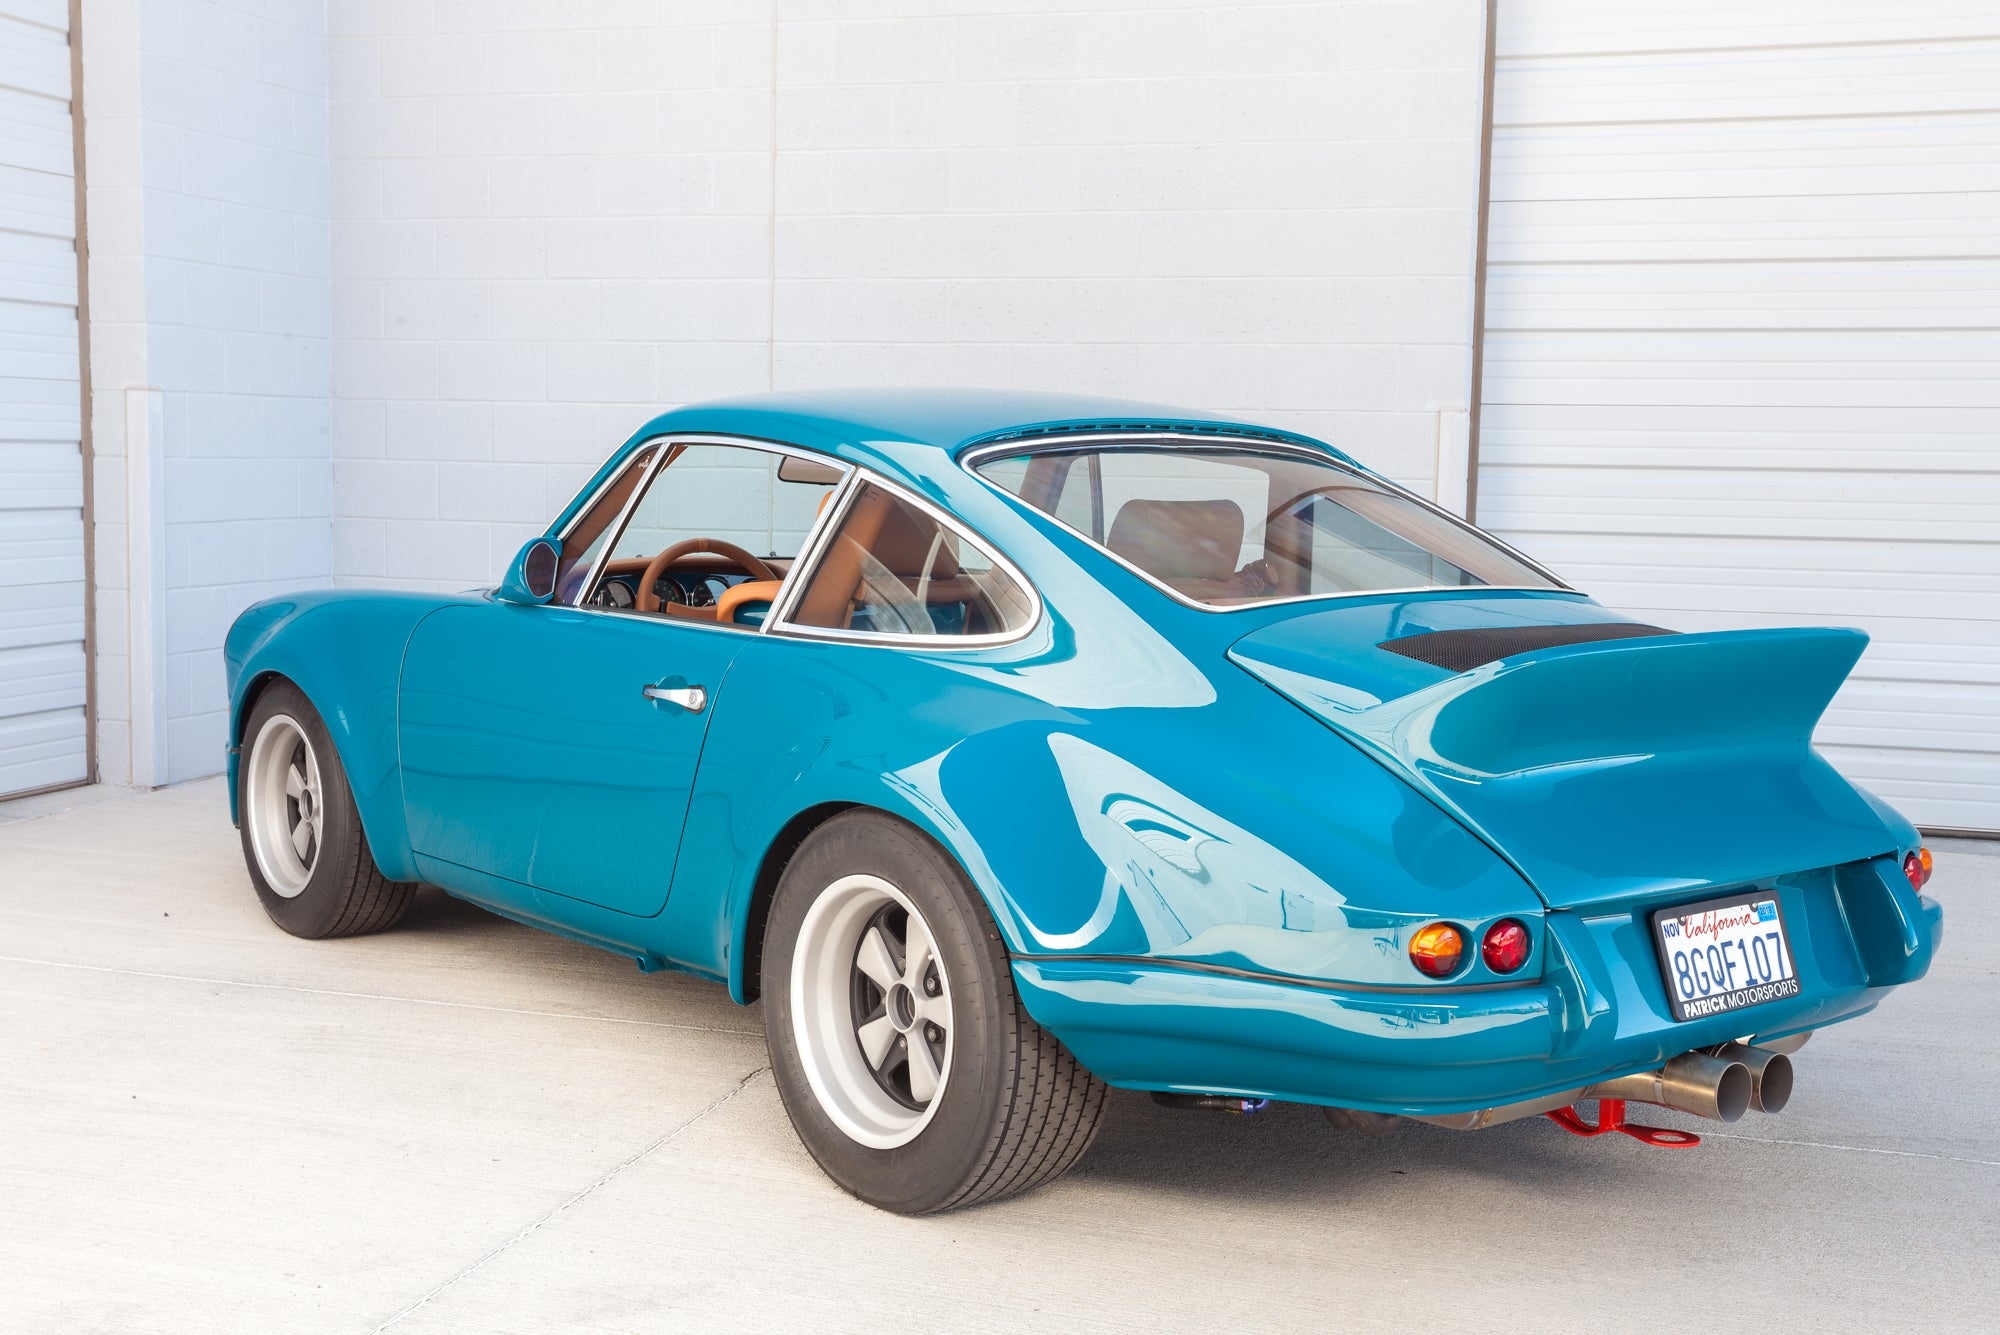 1975 1973 Porsche 911 RSR Backdate 993 Turbo rear driver